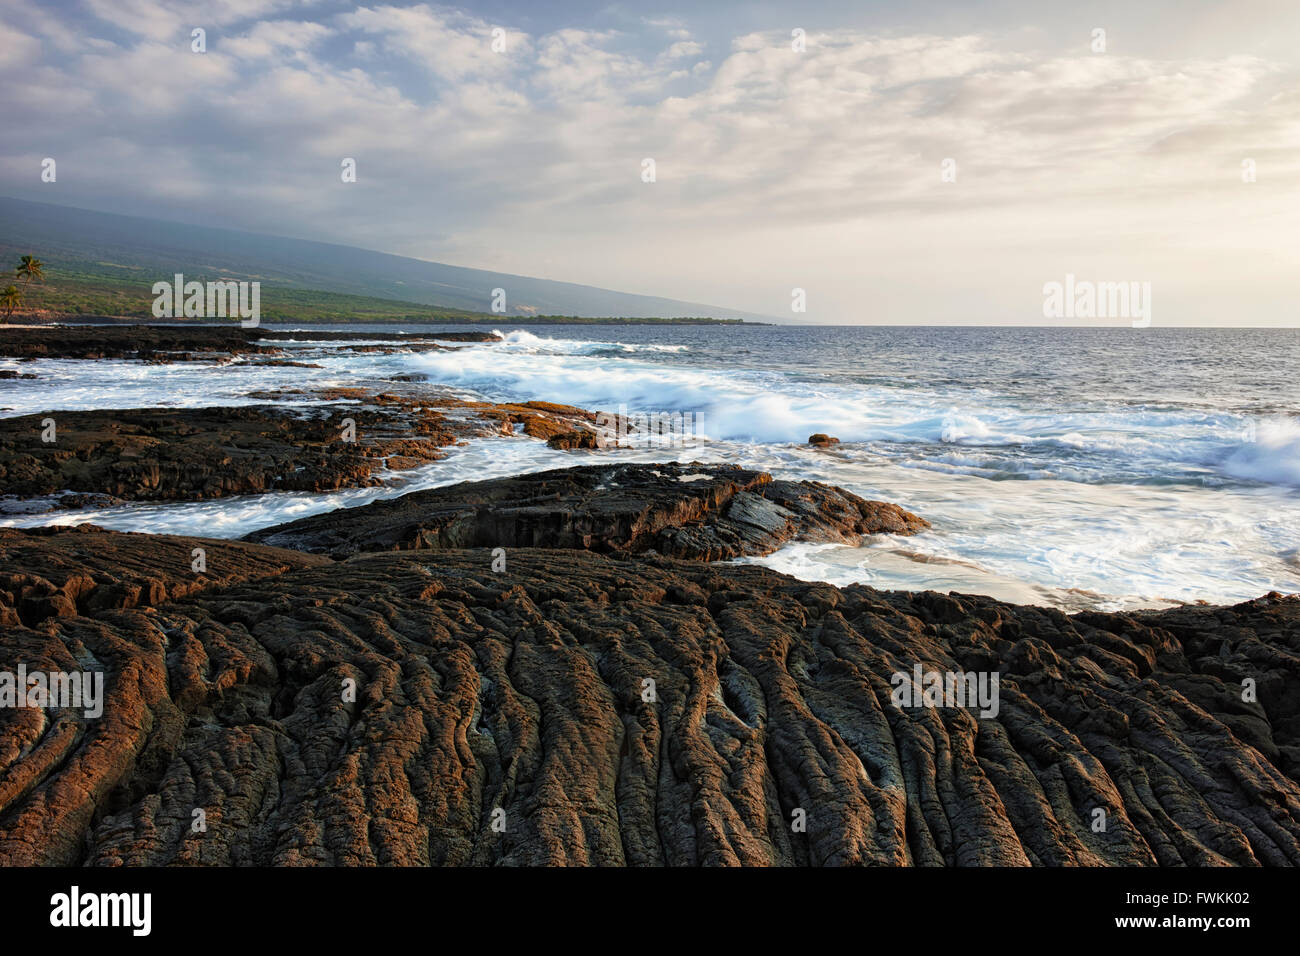 Pahoehoe lava flow meets the Pacific Ocean at The Place of Refuge National Historical Park on the Big Island of - Stock Image